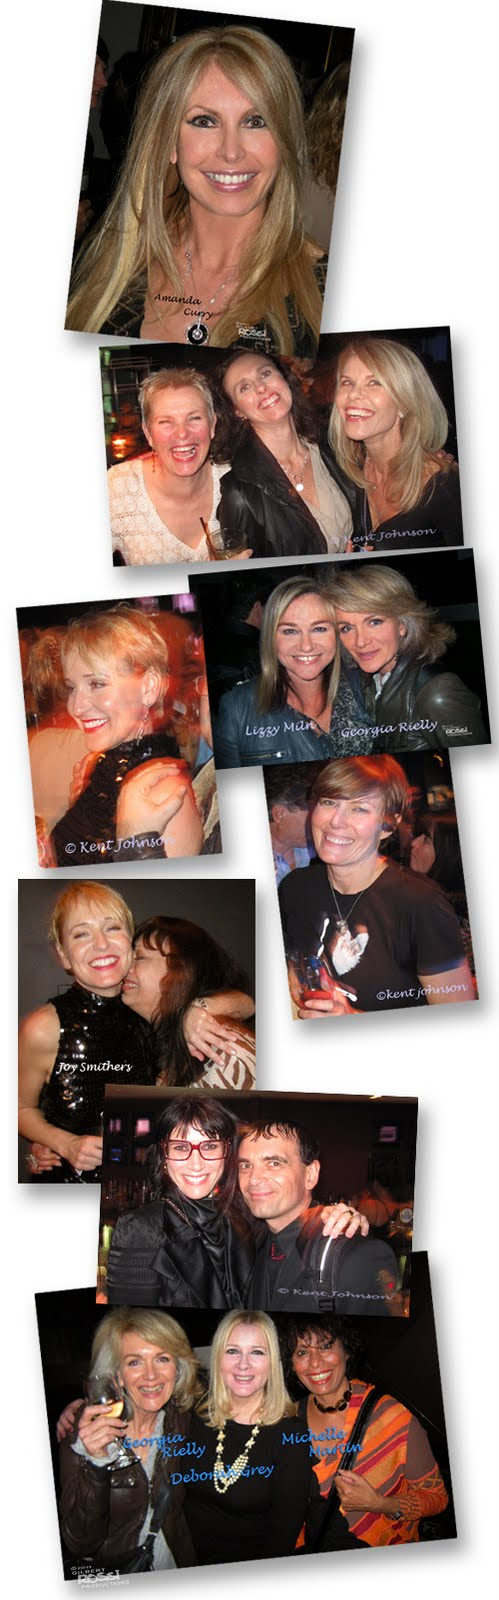 sydney fashion photographer gilbert rossi, joy smithers, reunion of fashion models photographers from 70's 80's